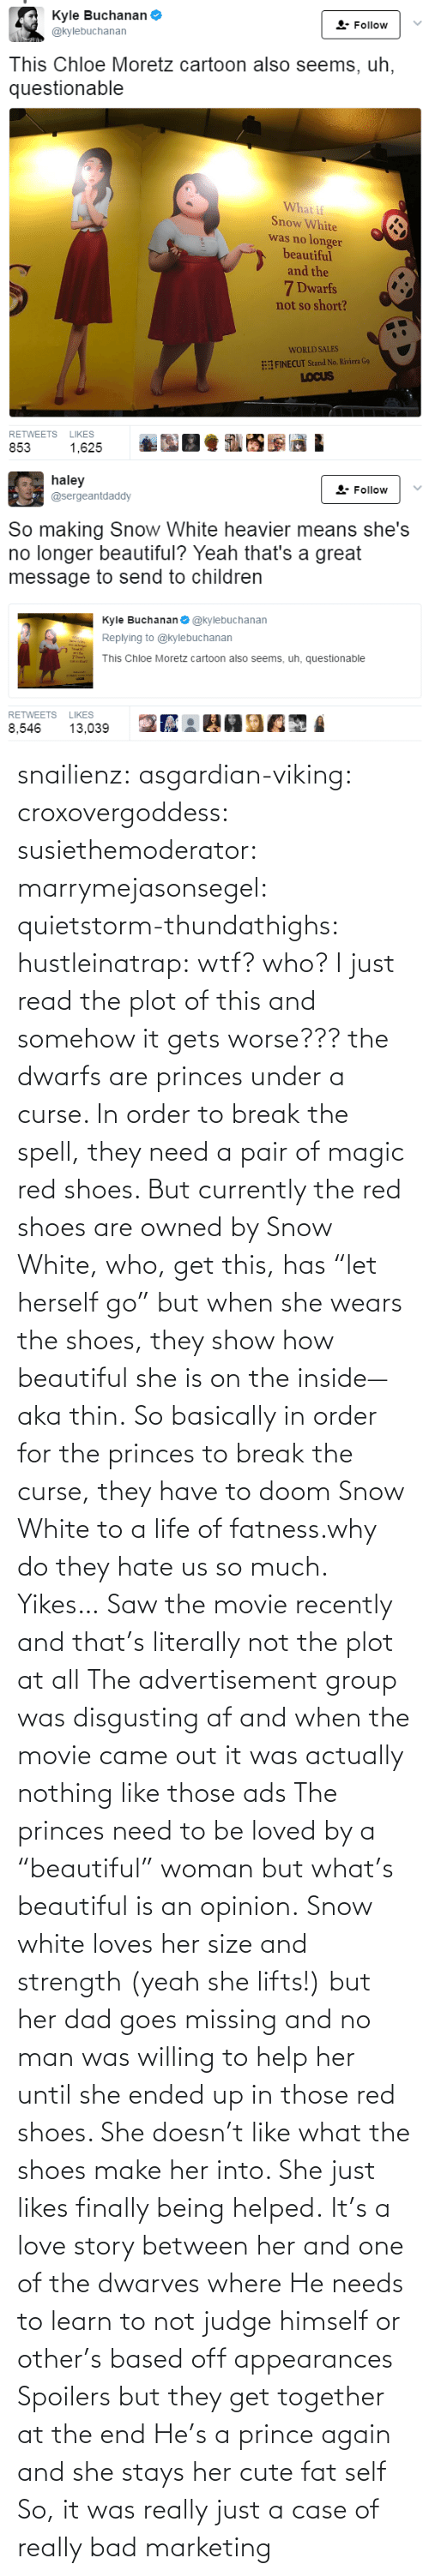 "beautiful: snailienz: asgardian-viking:  croxovergoddess:  susiethemoderator:  marrymejasonsegel:   quietstorm-thundathighs:  hustleinatrap: wtf?  who?   I just read the plot of this and somehow it gets worse??? the dwarfs are princes under a curse. In order to break the spell, they need a pair of magic red shoes. But currently the red shoes are owned by Snow White, who, get this, has ""let herself go"" but when she wears the shoes, they show how beautiful she is on the inside—aka thin. So basically in order for the princes to break the curse, they have to doom Snow White to a life of fatness.why do they hate us so much.   Yikes…    Saw the movie recently and that's literally not the plot at all The advertisement group was disgusting af and when the movie came out it was actually nothing like those ads The princes need to be loved by a ""beautiful"" woman but what's beautiful is an opinion. Snow white loves her size and strength (yeah she lifts!) but her dad goes missing and no man was willing to help her until she ended up in those red shoes. She doesn't like what the shoes make her into. She just likes finally being helped. It's a love story between her and one of the dwarves where He needs to learn to not judge himself or other's based off appearances  Spoilers but they get together at the end He's a prince again and she stays her cute fat self  So, it was really just a case of really bad marketing"